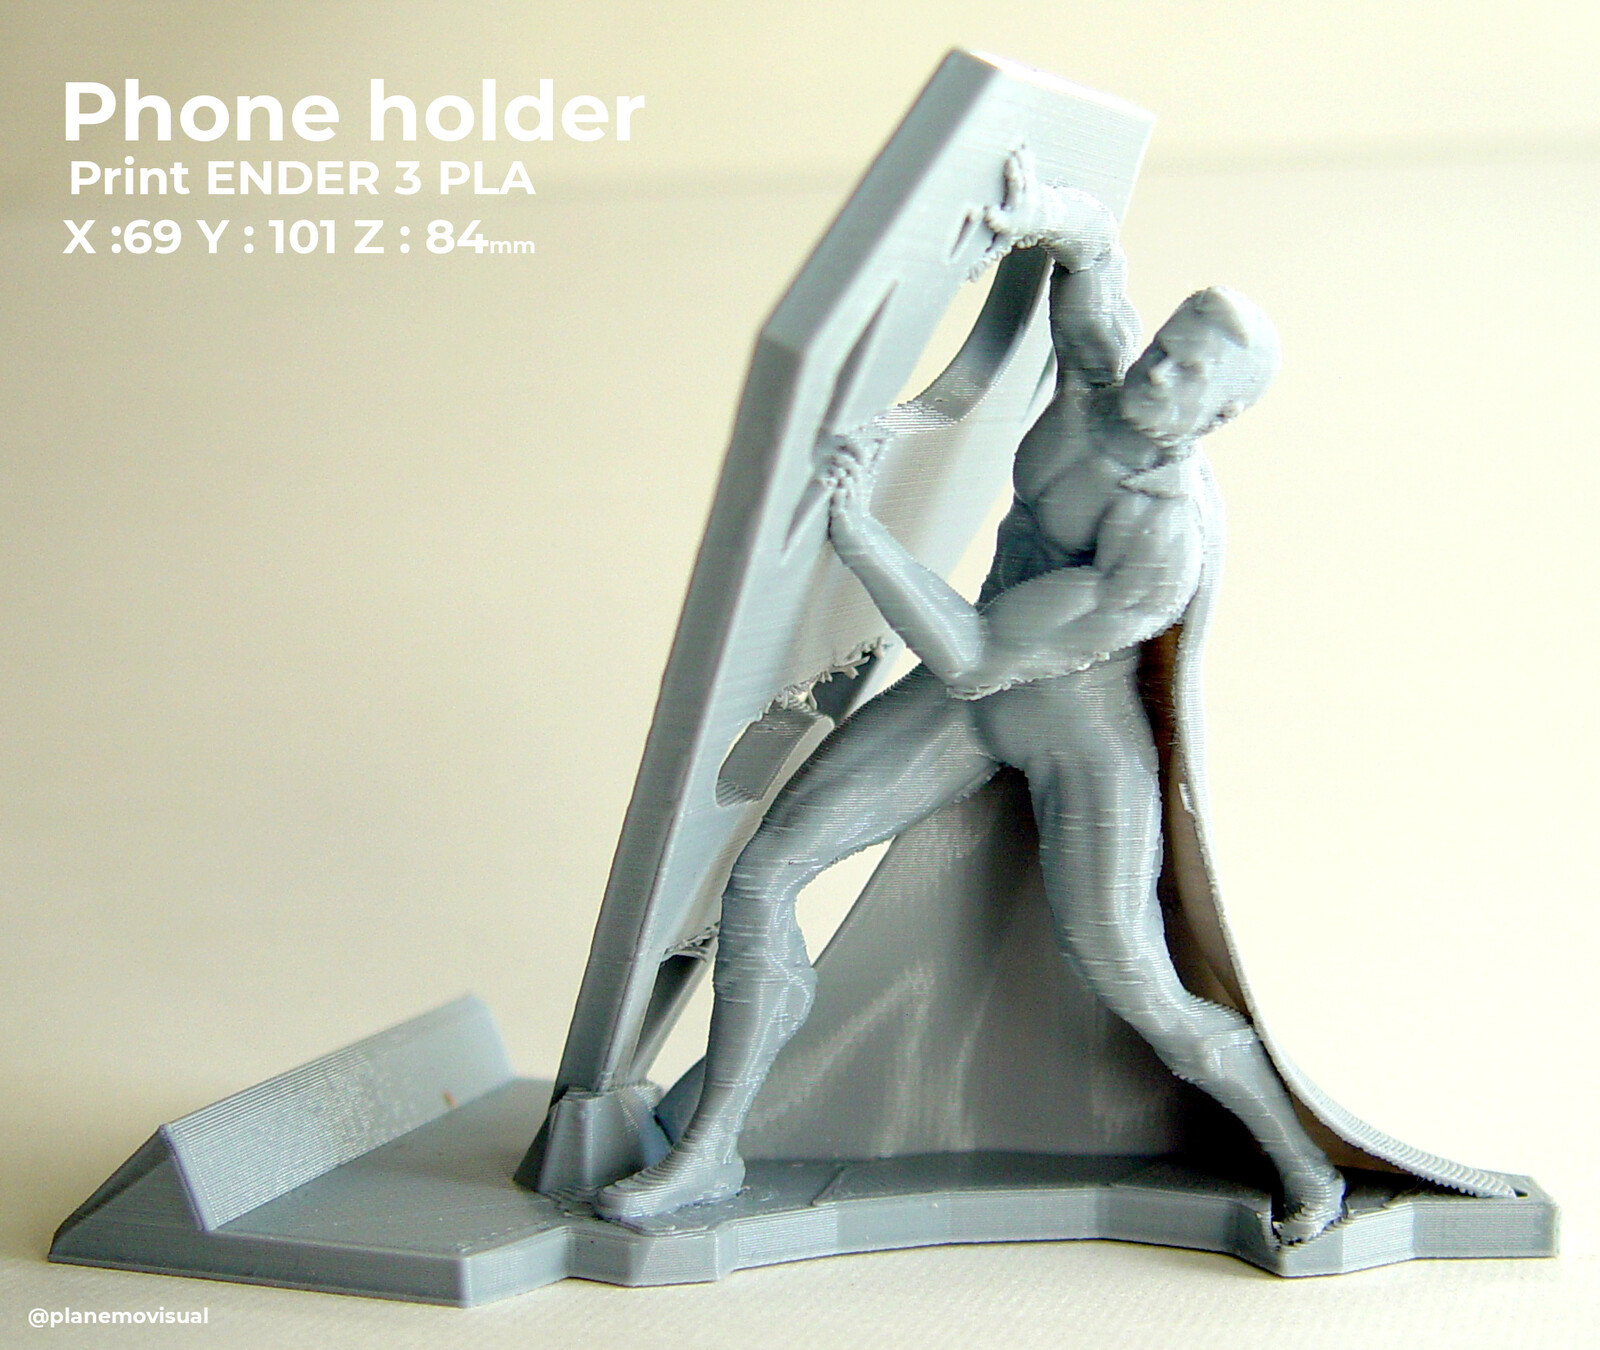 Download model STL https://www.thingiverse.com/thing:3904510